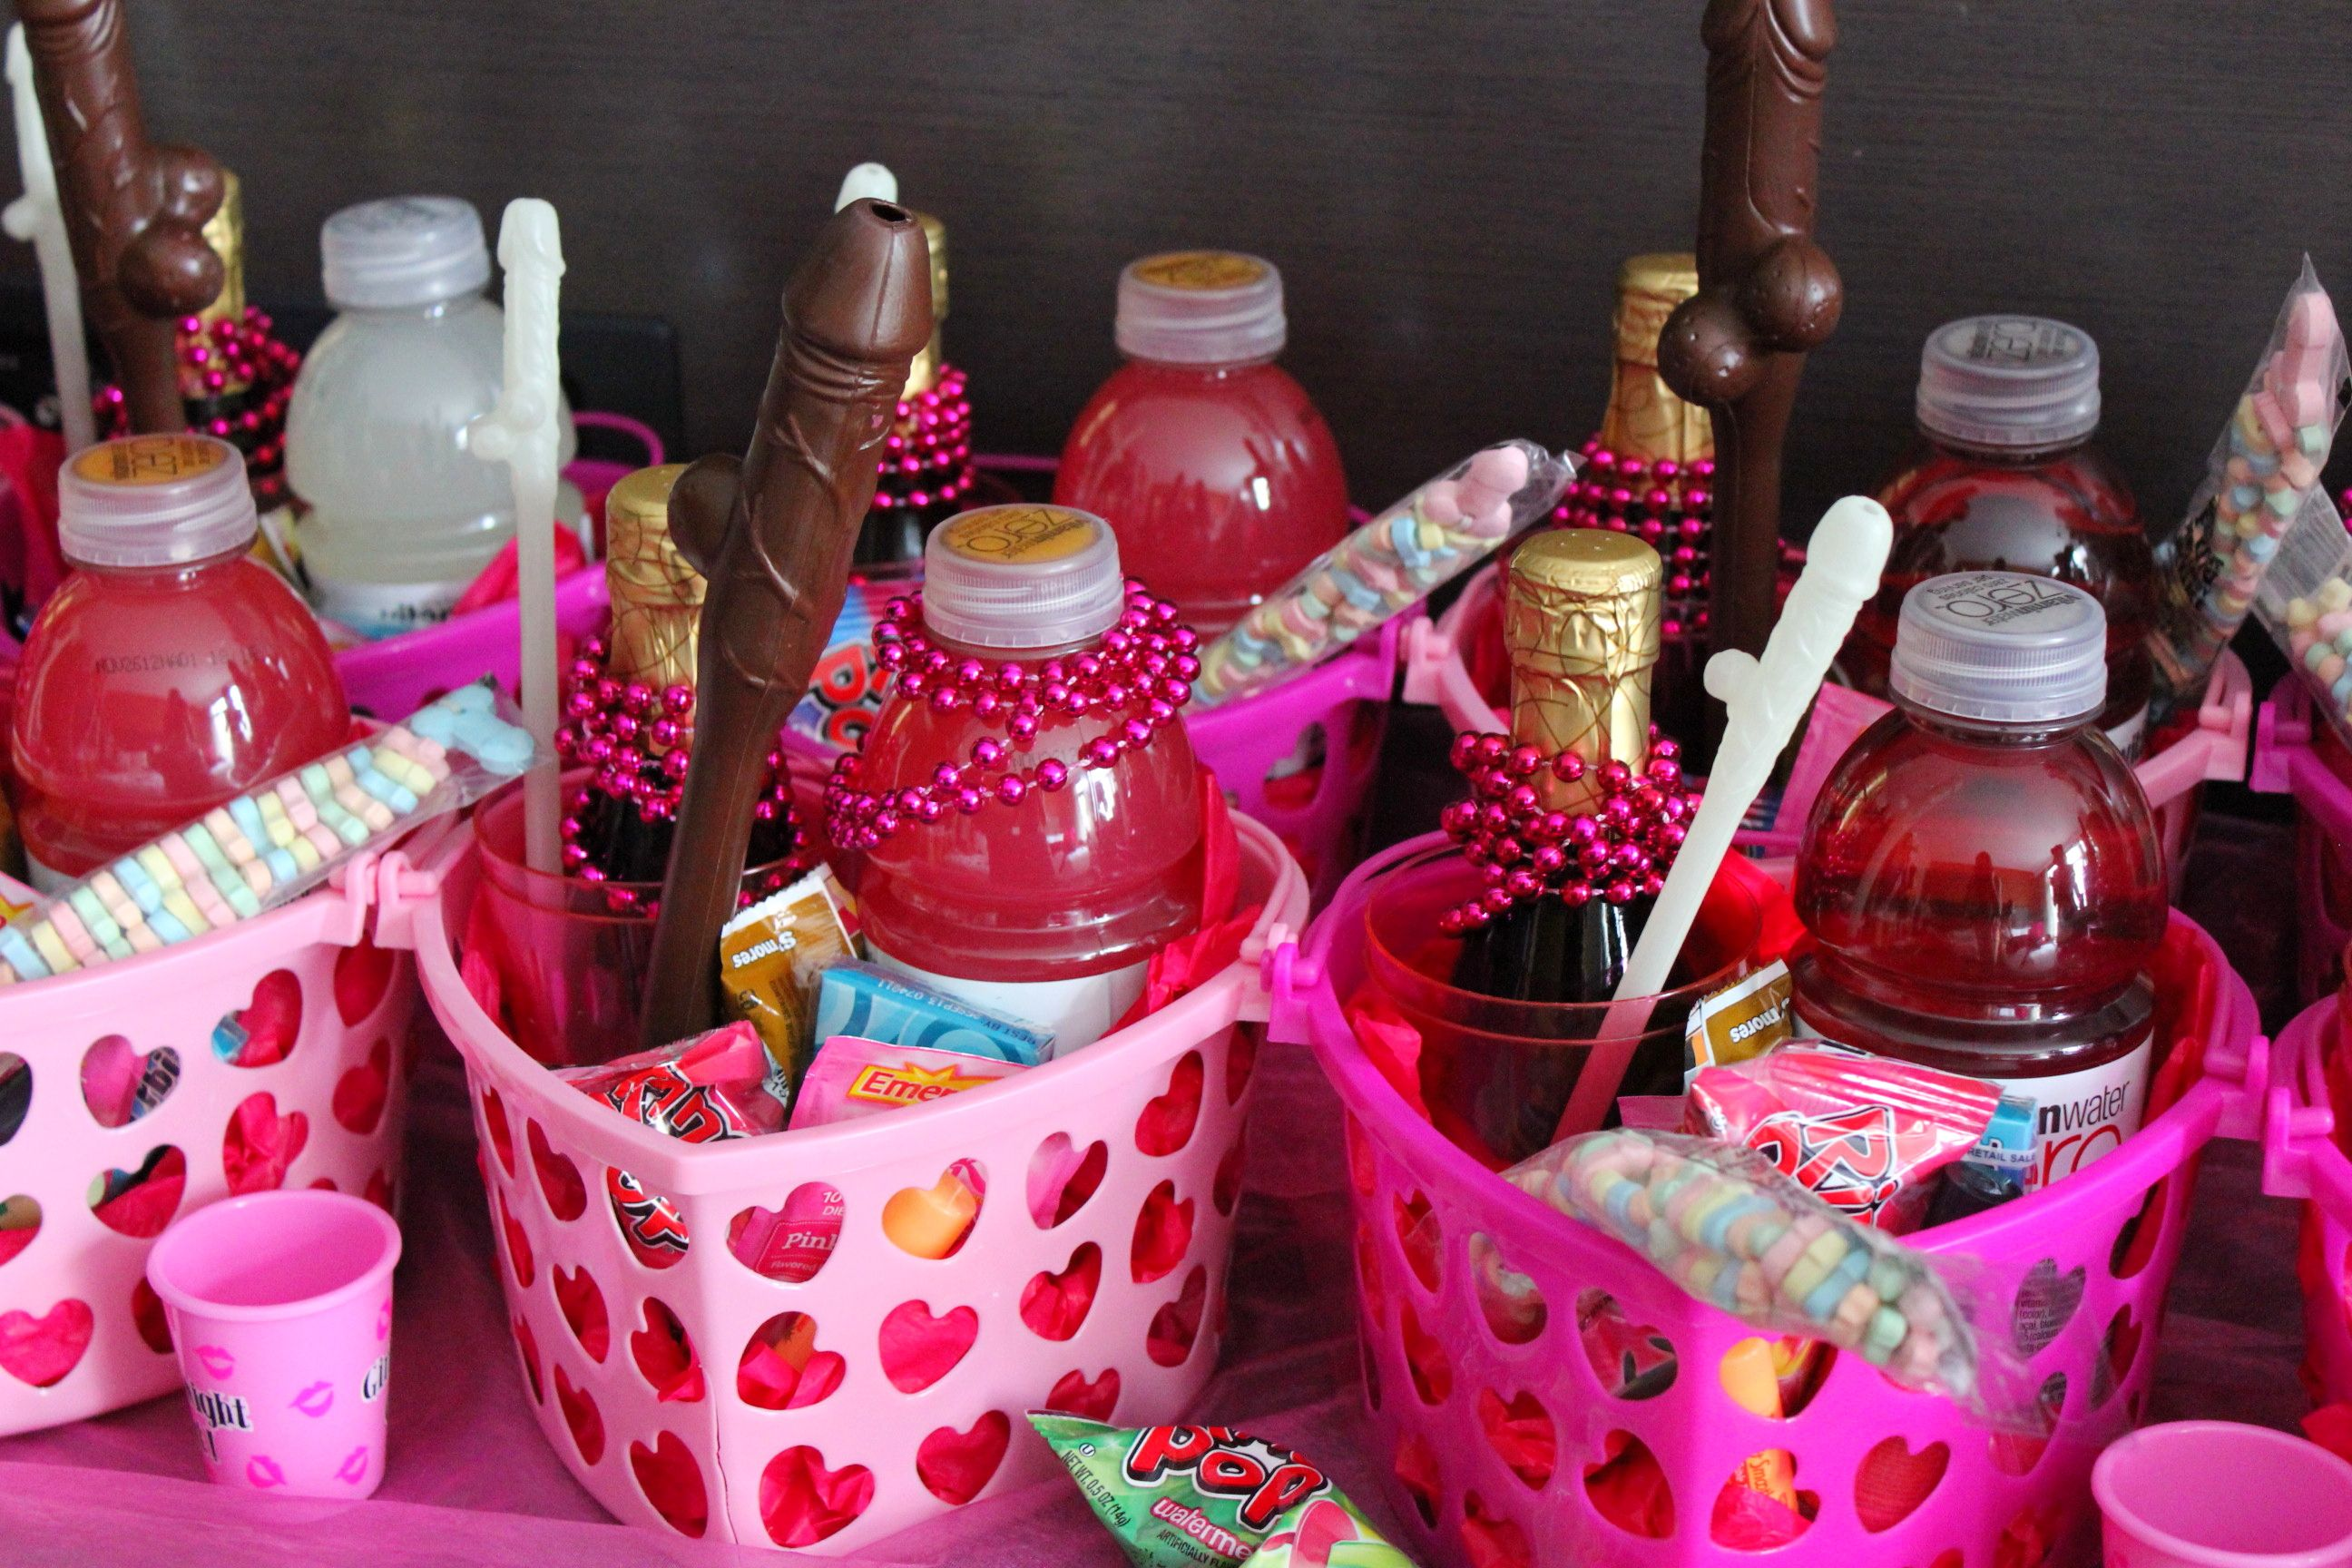 Bachelorette Party Favors! Bachelorette ideas